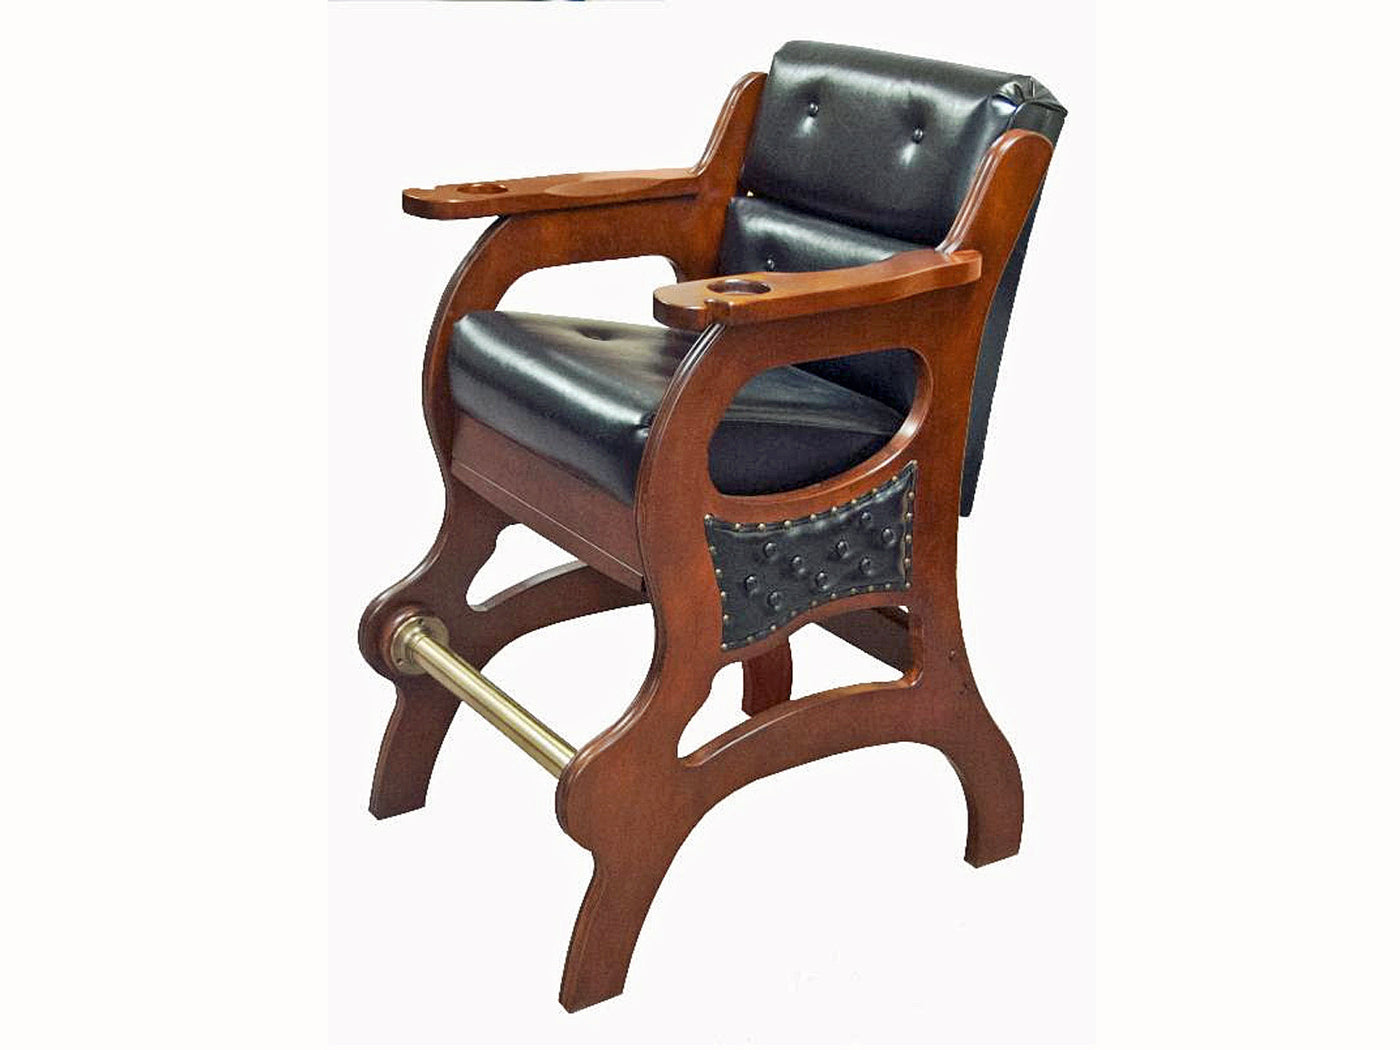 Opera 20 5 as well 1764513 Circa 1920s 1940s Colonial Revival Swan Neck Rocking Chair besides Seating Rocking Chair 06 Carbon Fiber Teak additionally How Build Super Easy Little Adirondack Chair also 6820314 Antique Edwardian Mahogany Rocking Chair. on rocking chair back rests